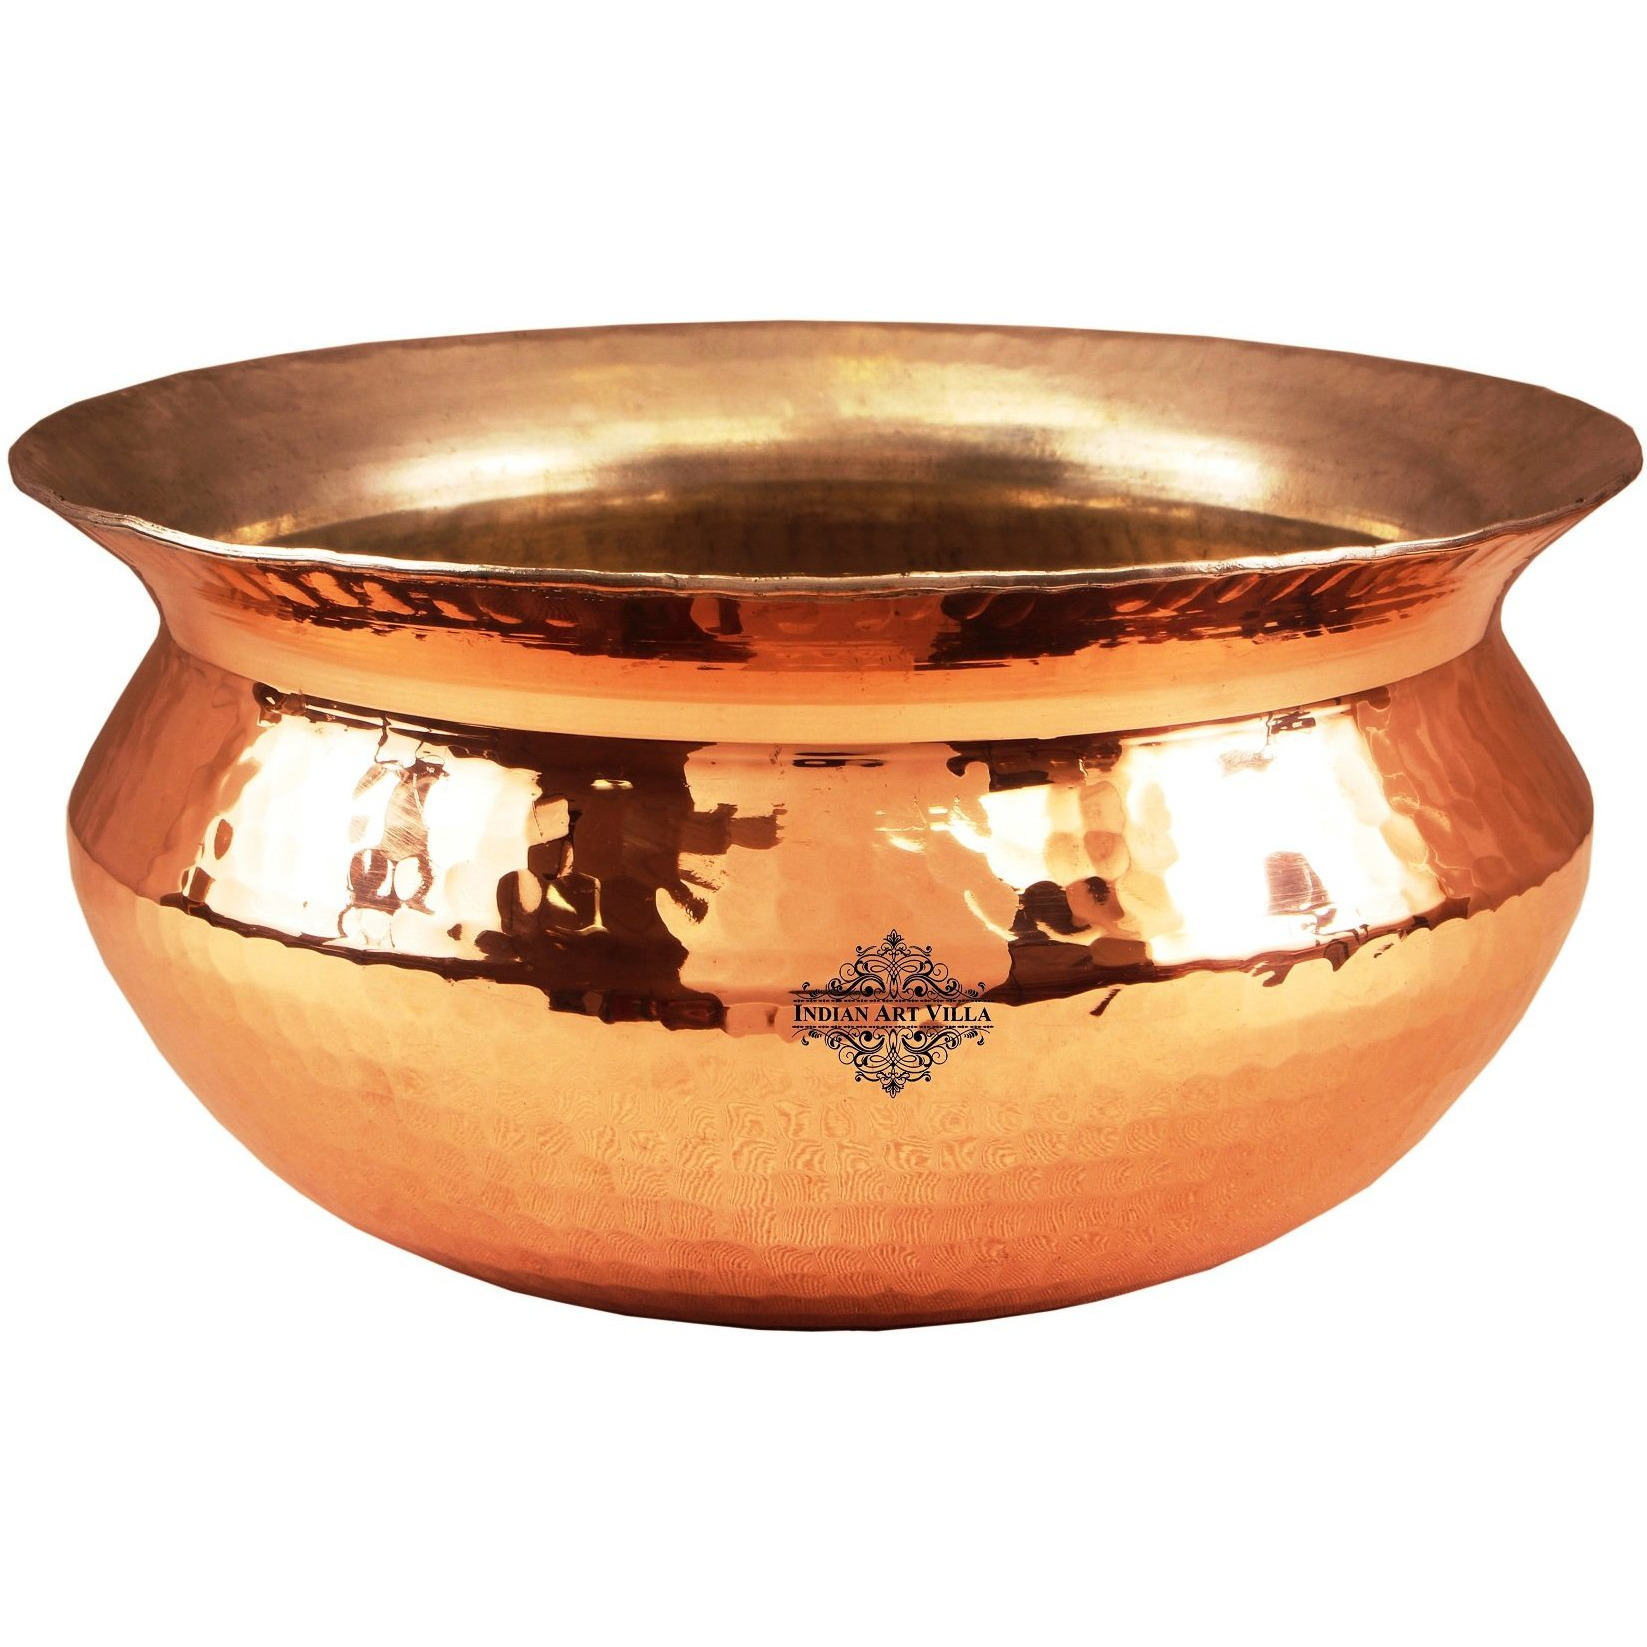 Indian Art Villa Copper Hammered Handi with Inside Tin Lining 8.6 inch Dia